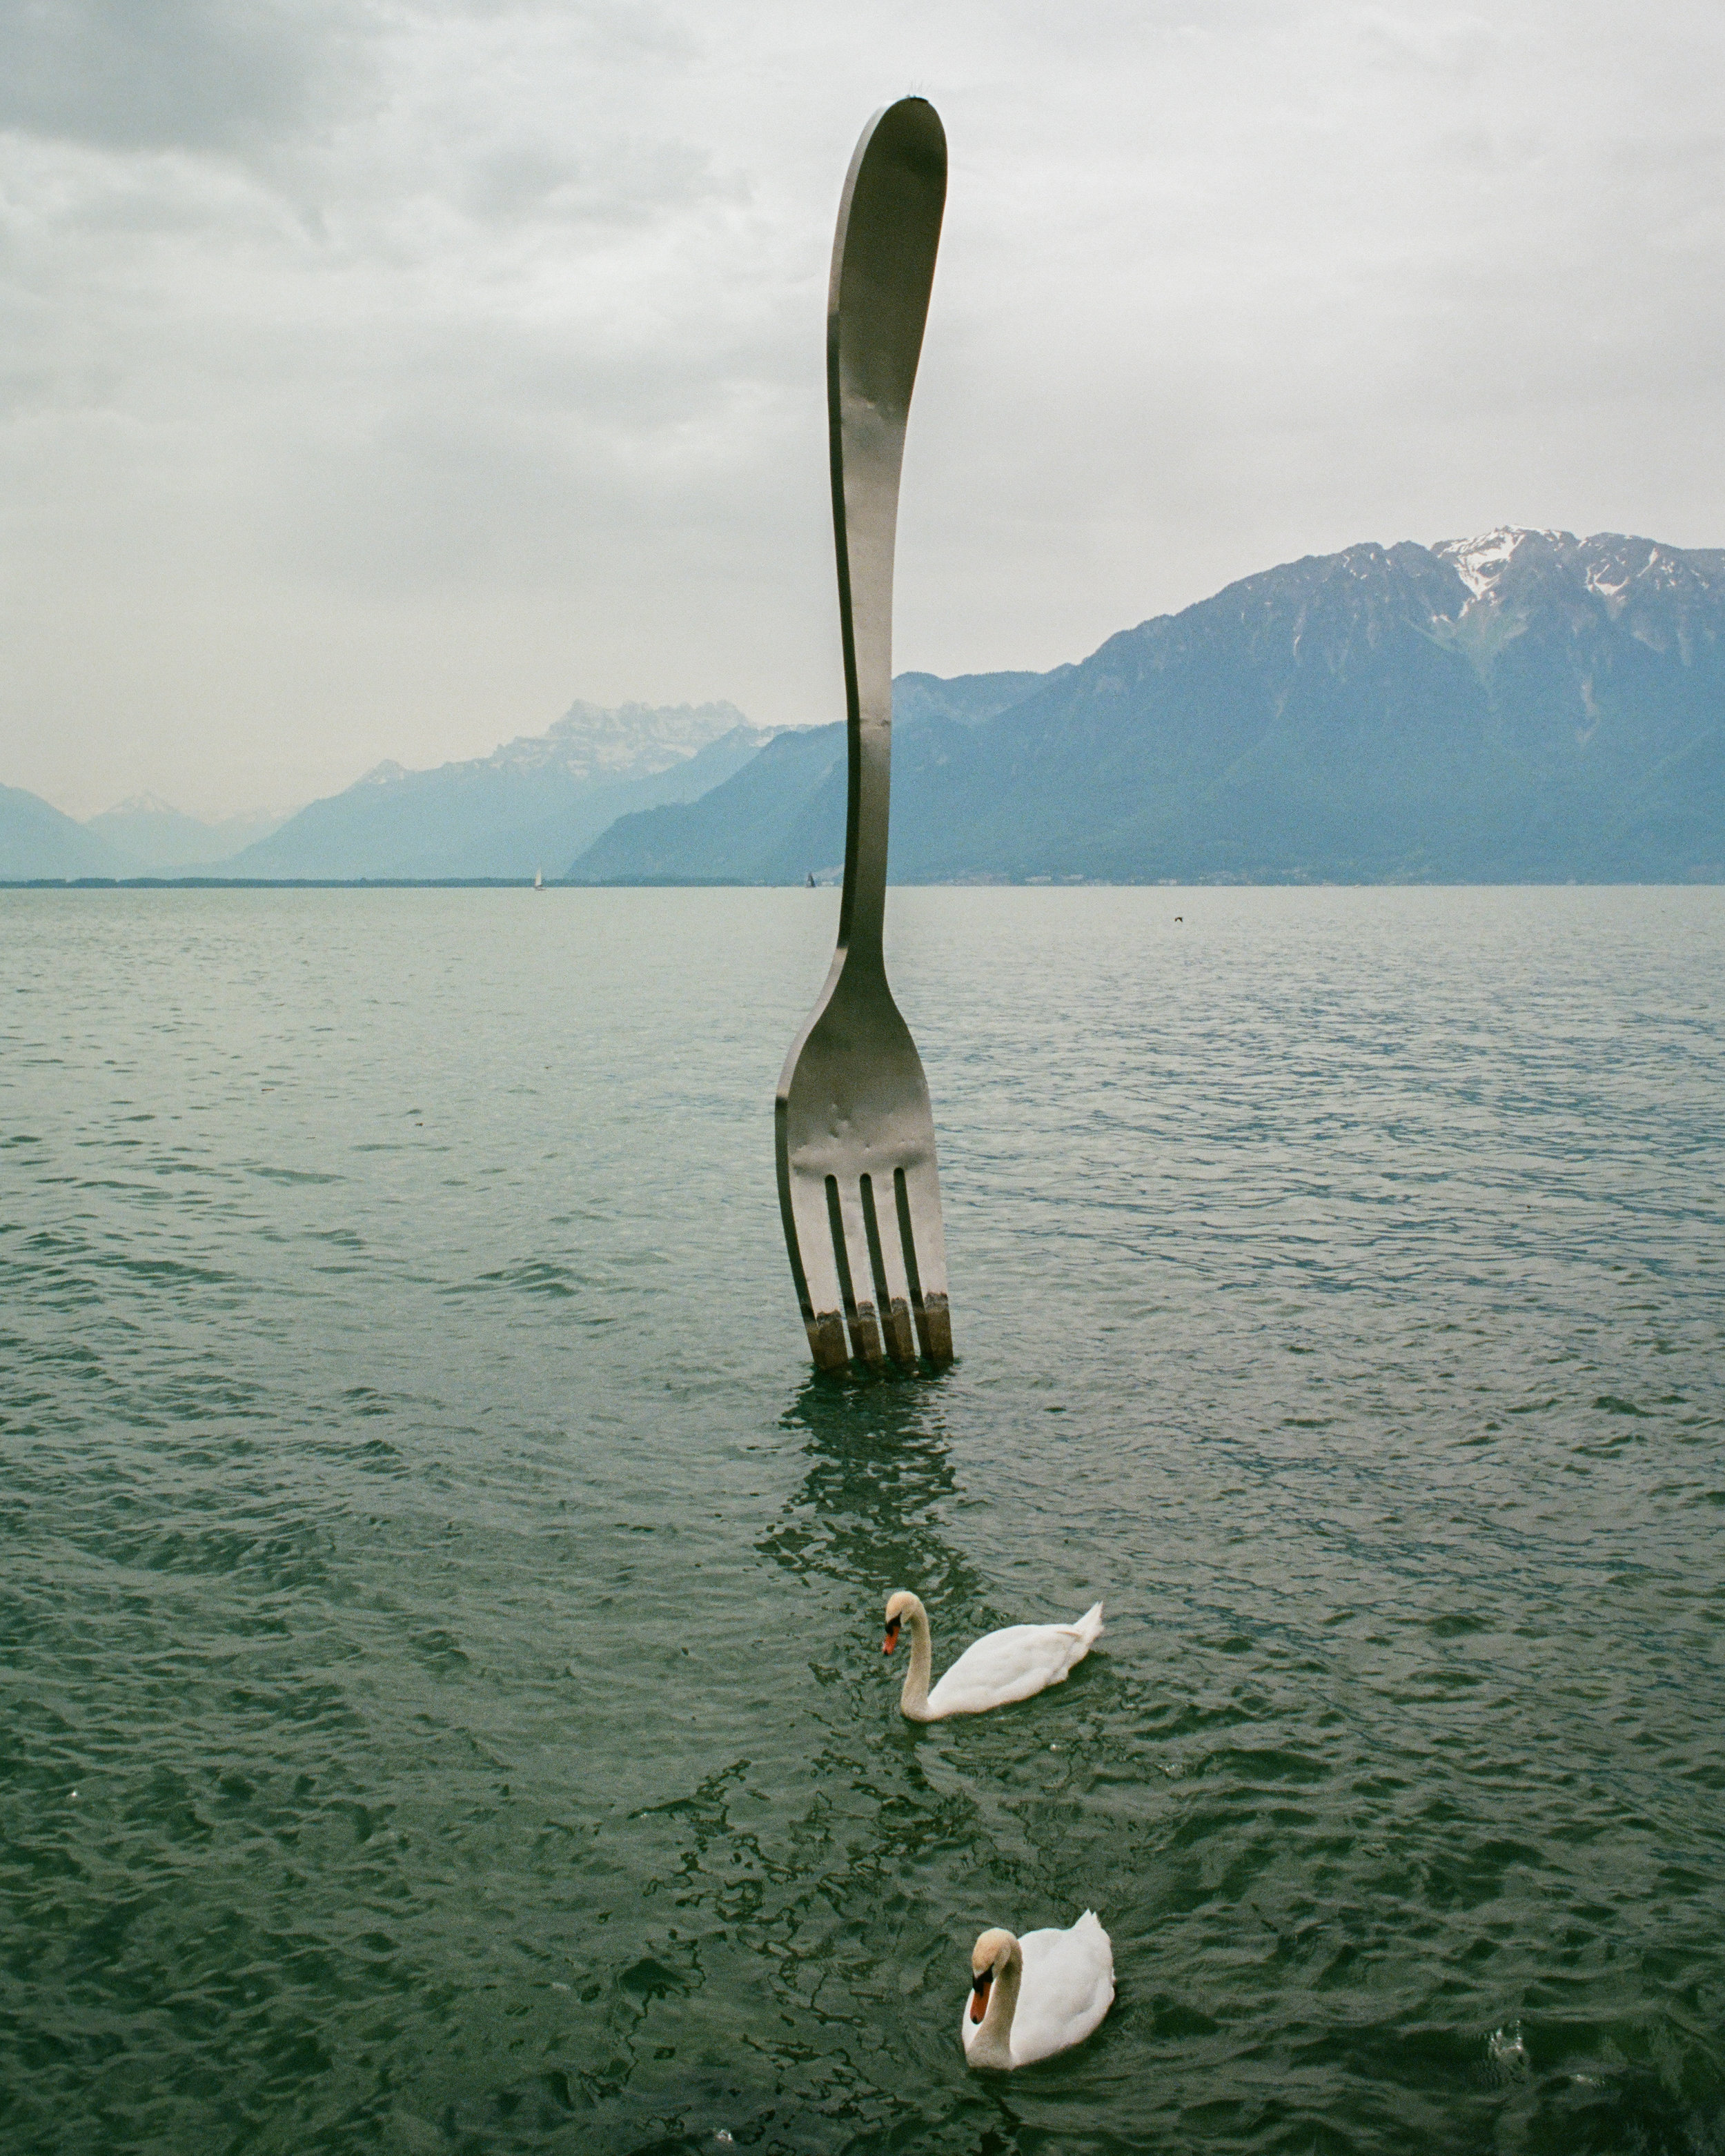 The Fork of Vevey on Lake Geneva. Kodak Porta 160 Film